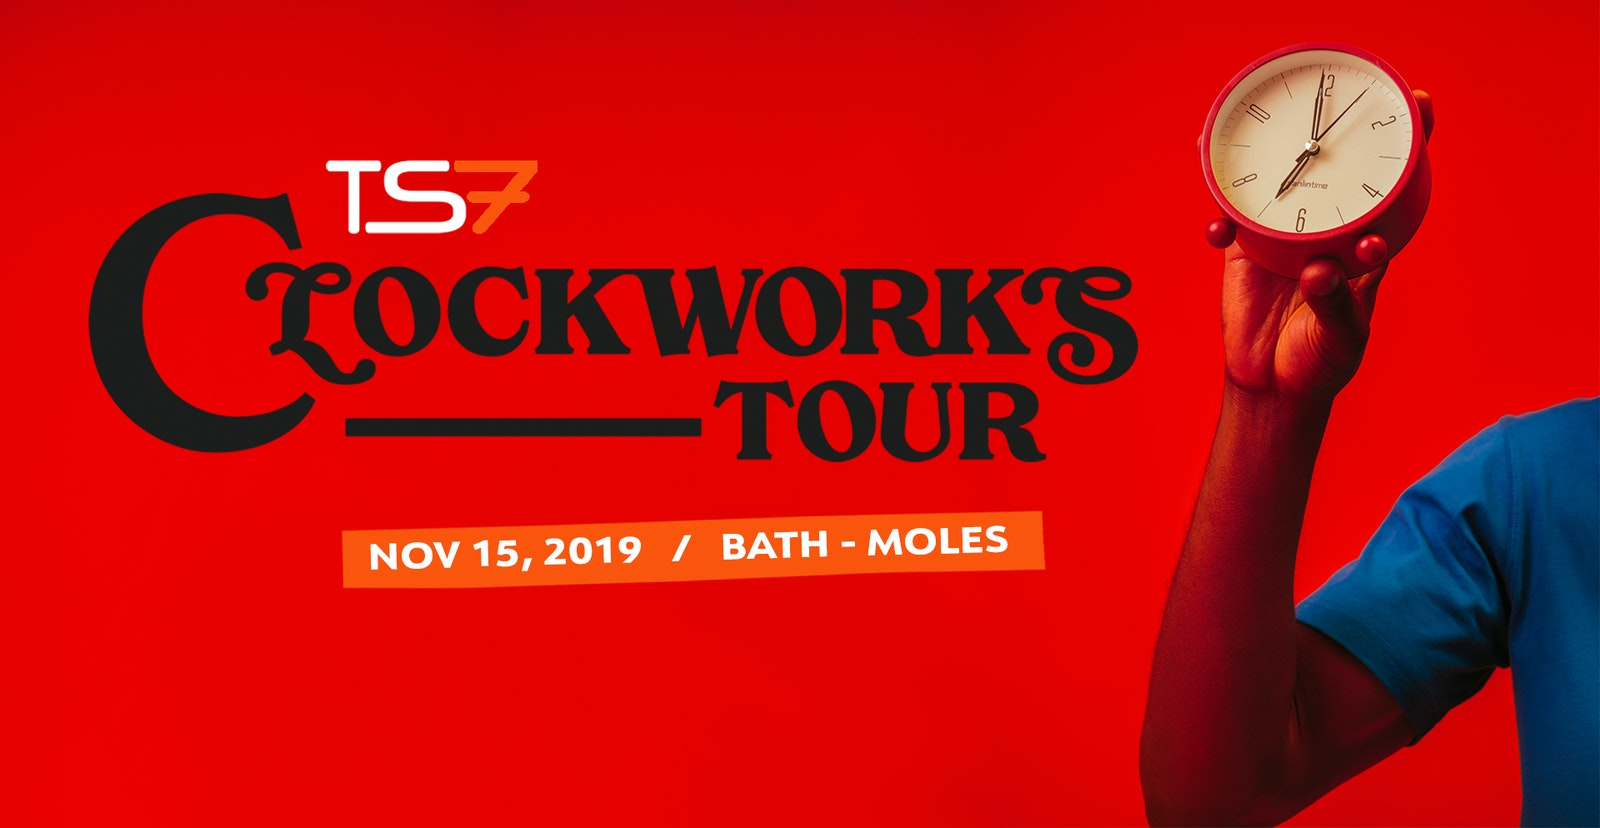 TS7: Clockworks UK Tour – Bath